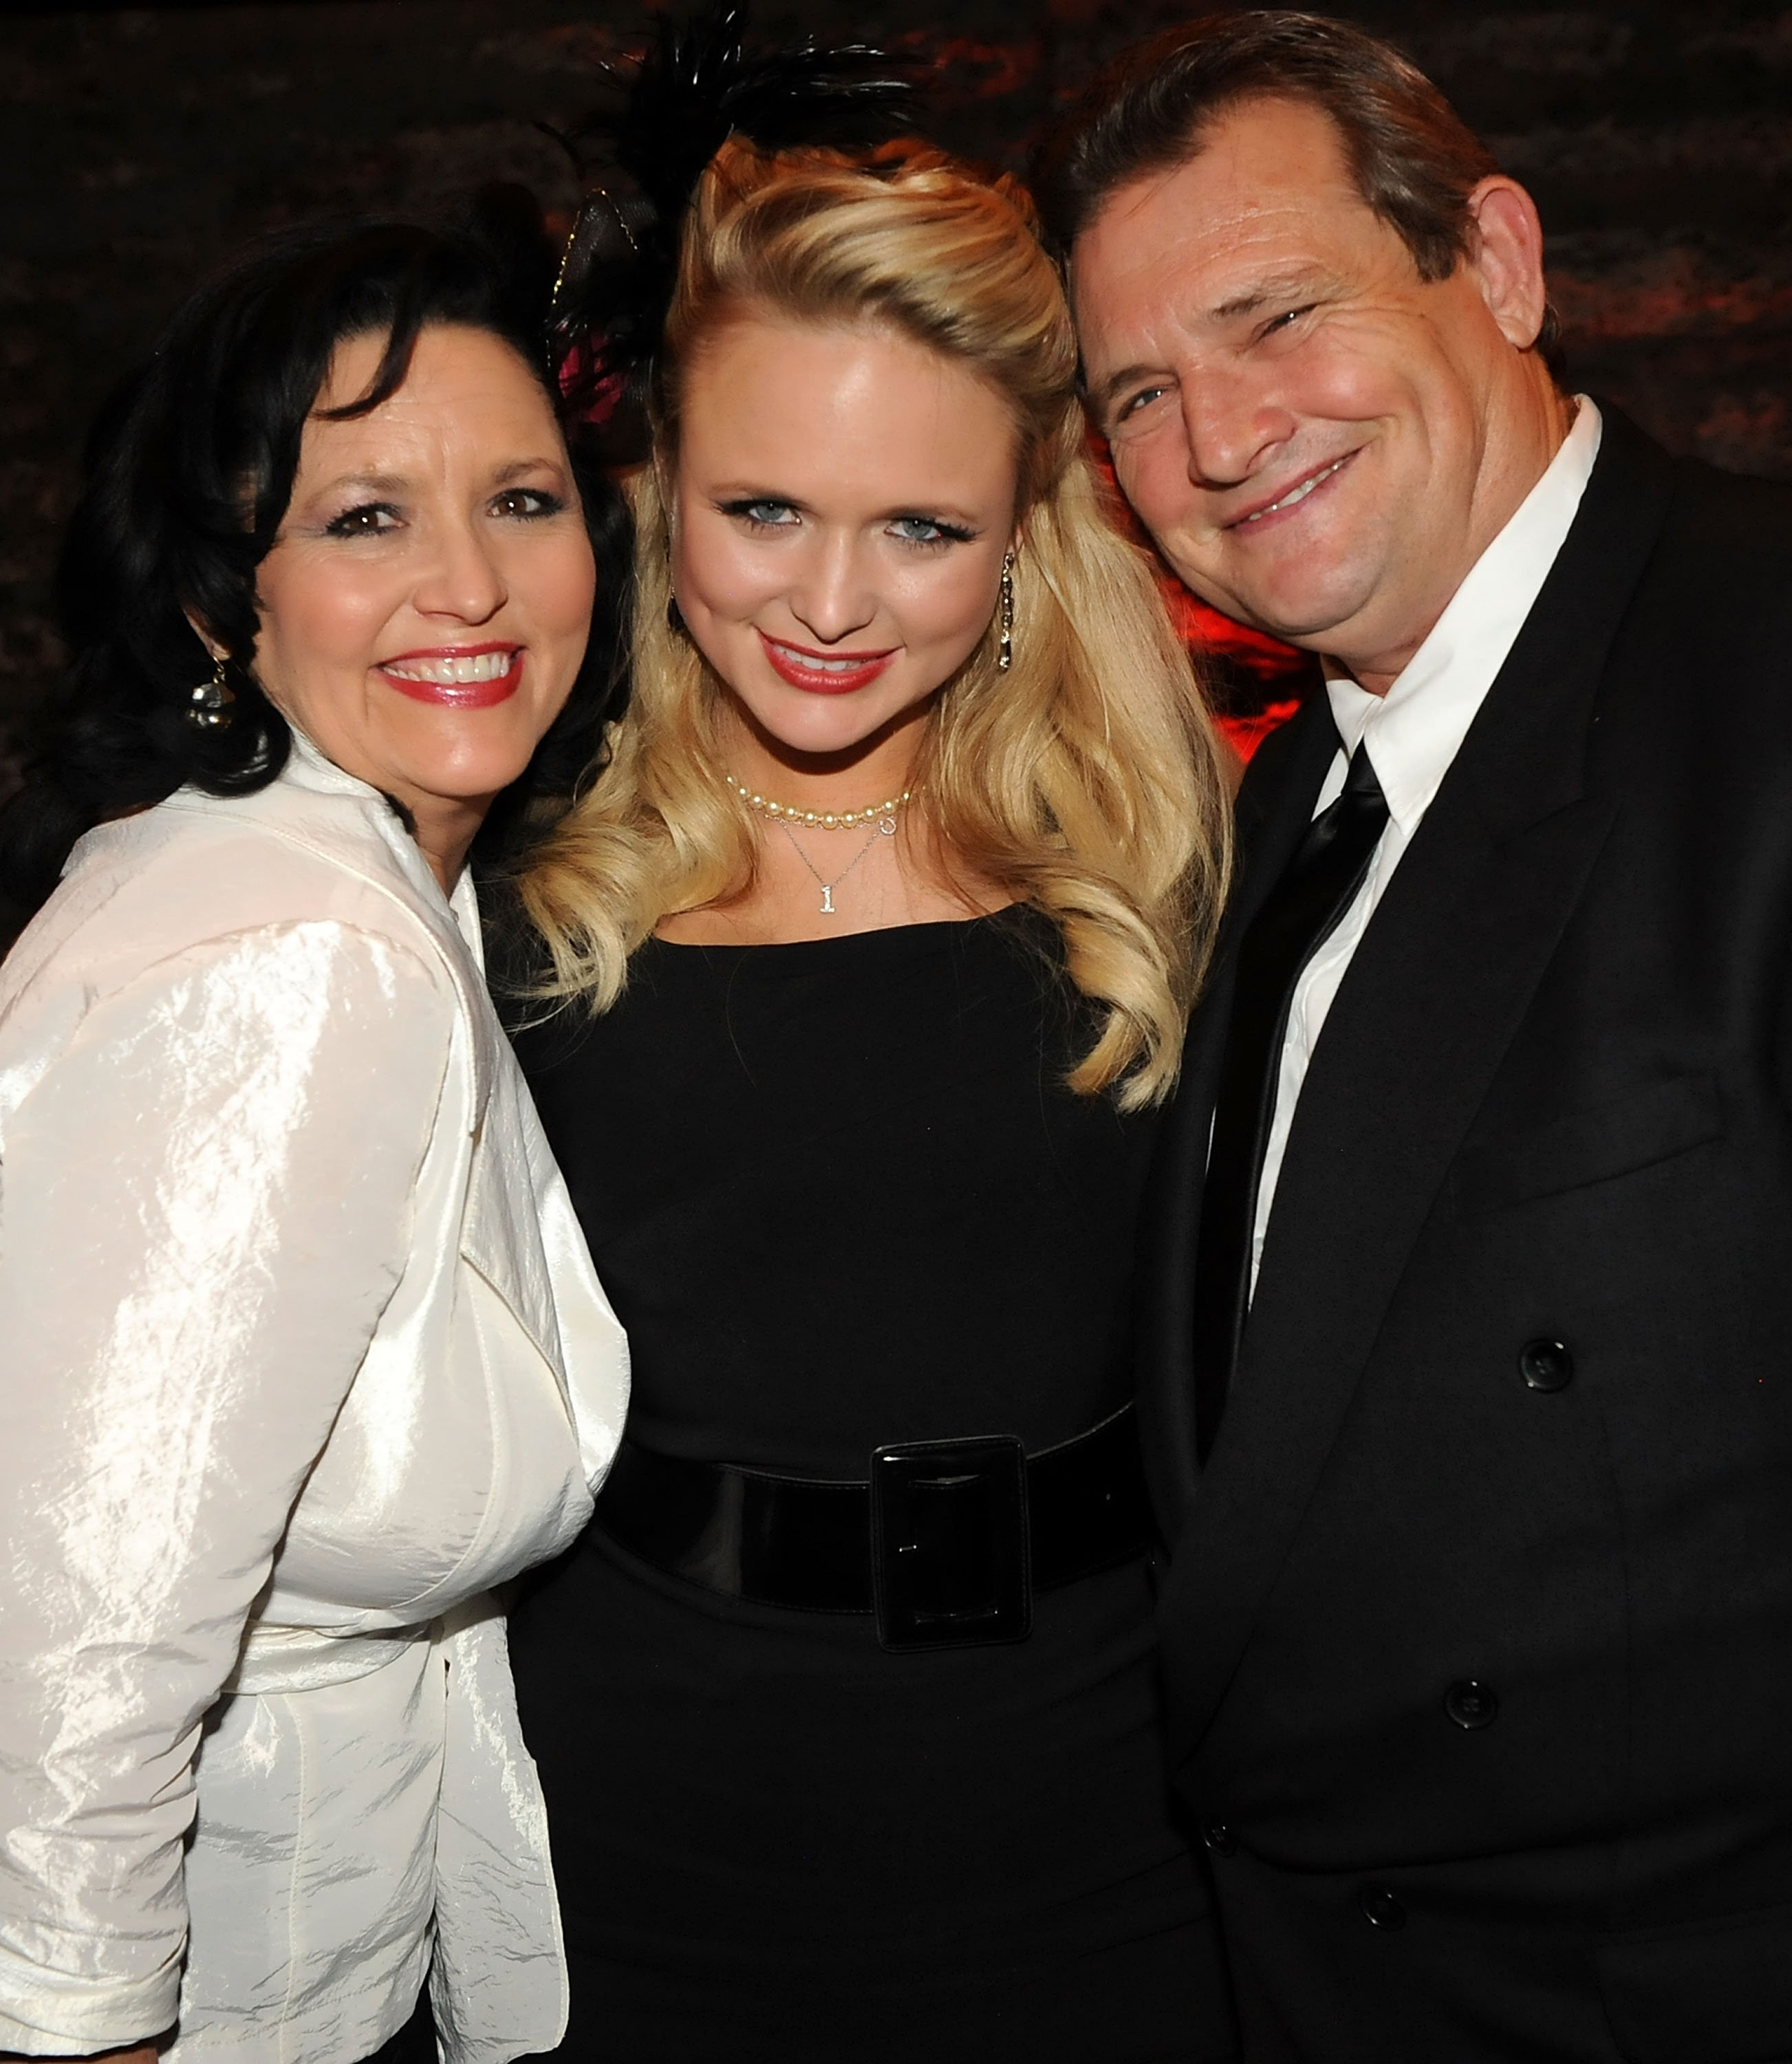 Miranda Lambert with her mother Beverly and father Richard at the Cellar to celebrate her first #1 single in Nashville, Tennessee on February 26, 2010   Photo: Getty Images